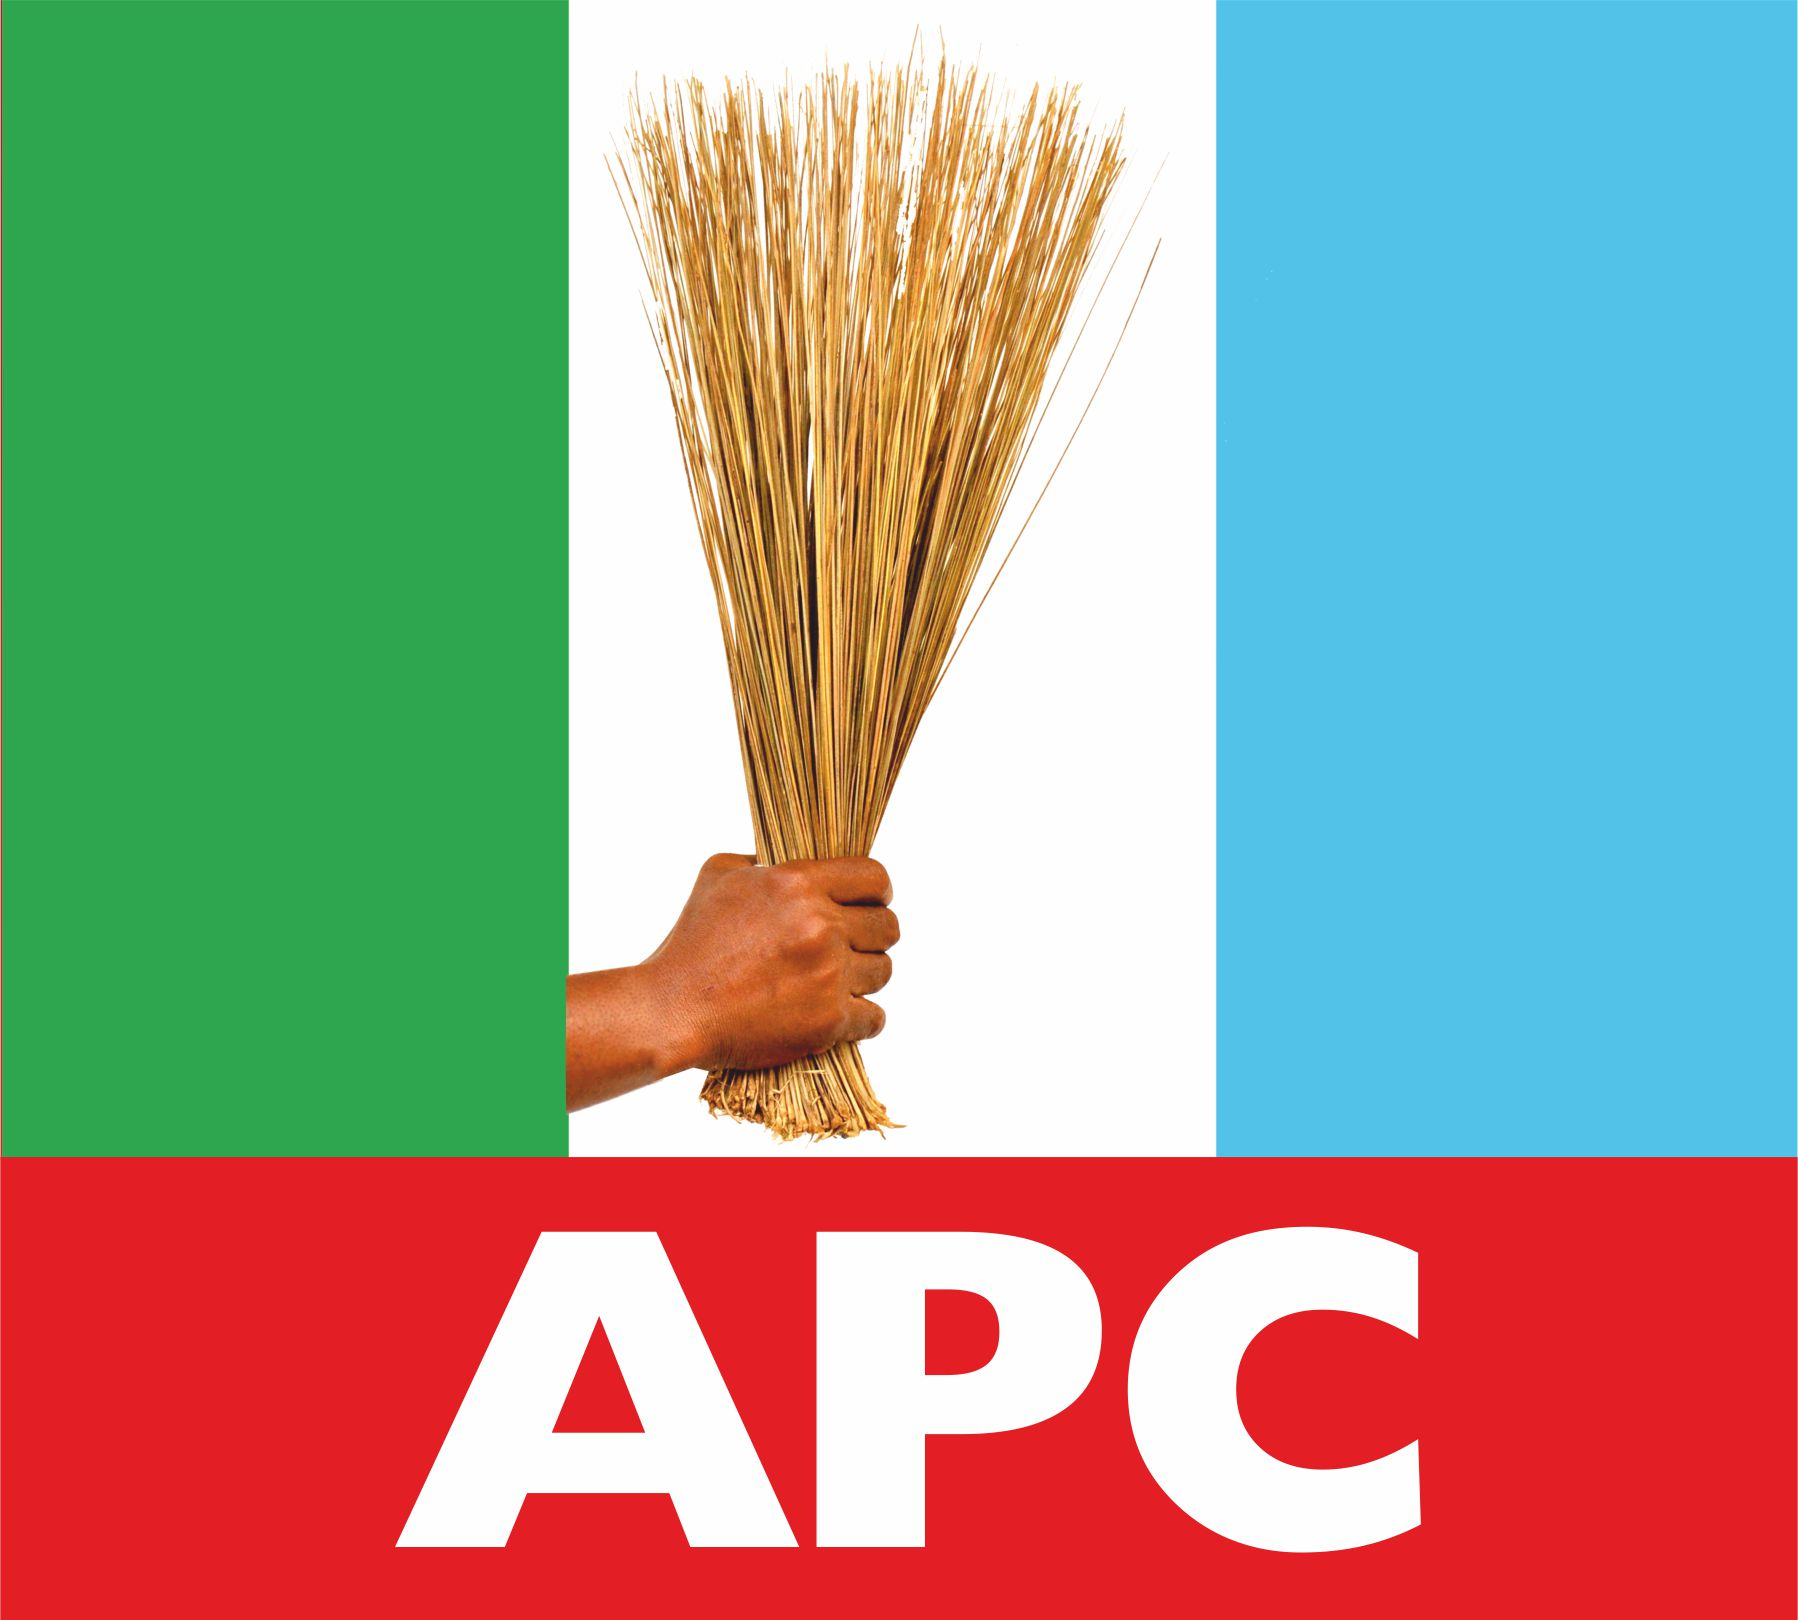 LG poll: APC leaders warn against imposition of candidates